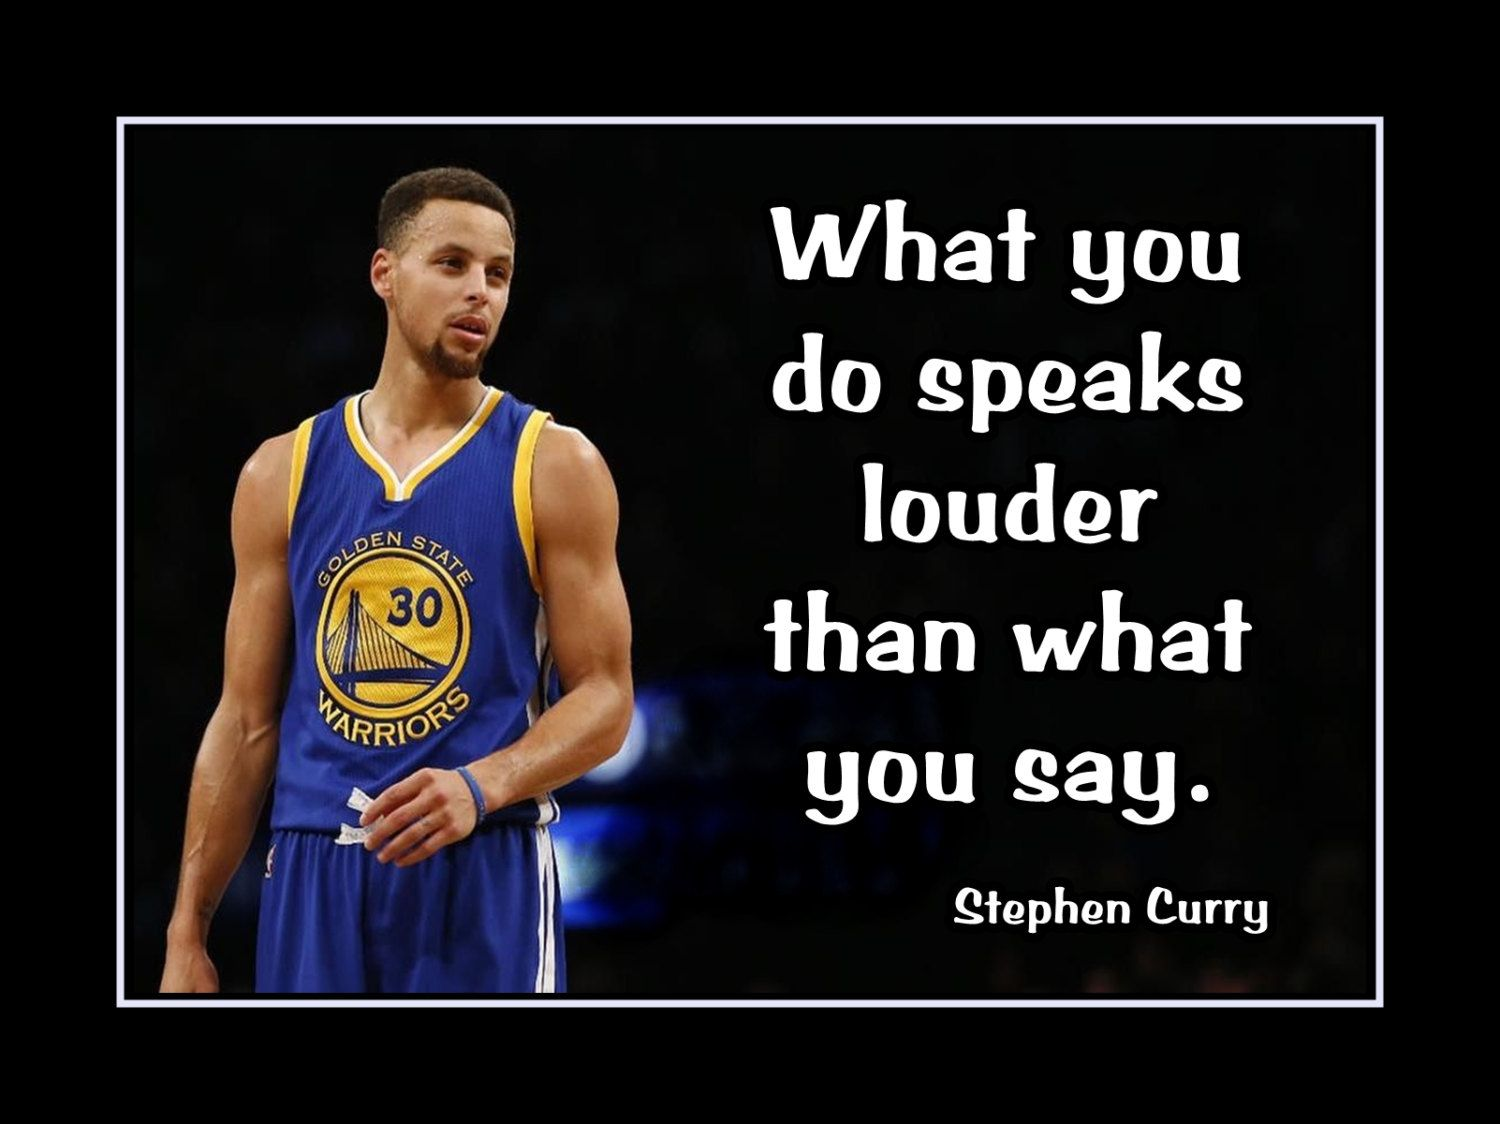 Funny Pictures Of Nba Players With Quotes: Inspirational Basketball Motivation Wall Art, Stephen